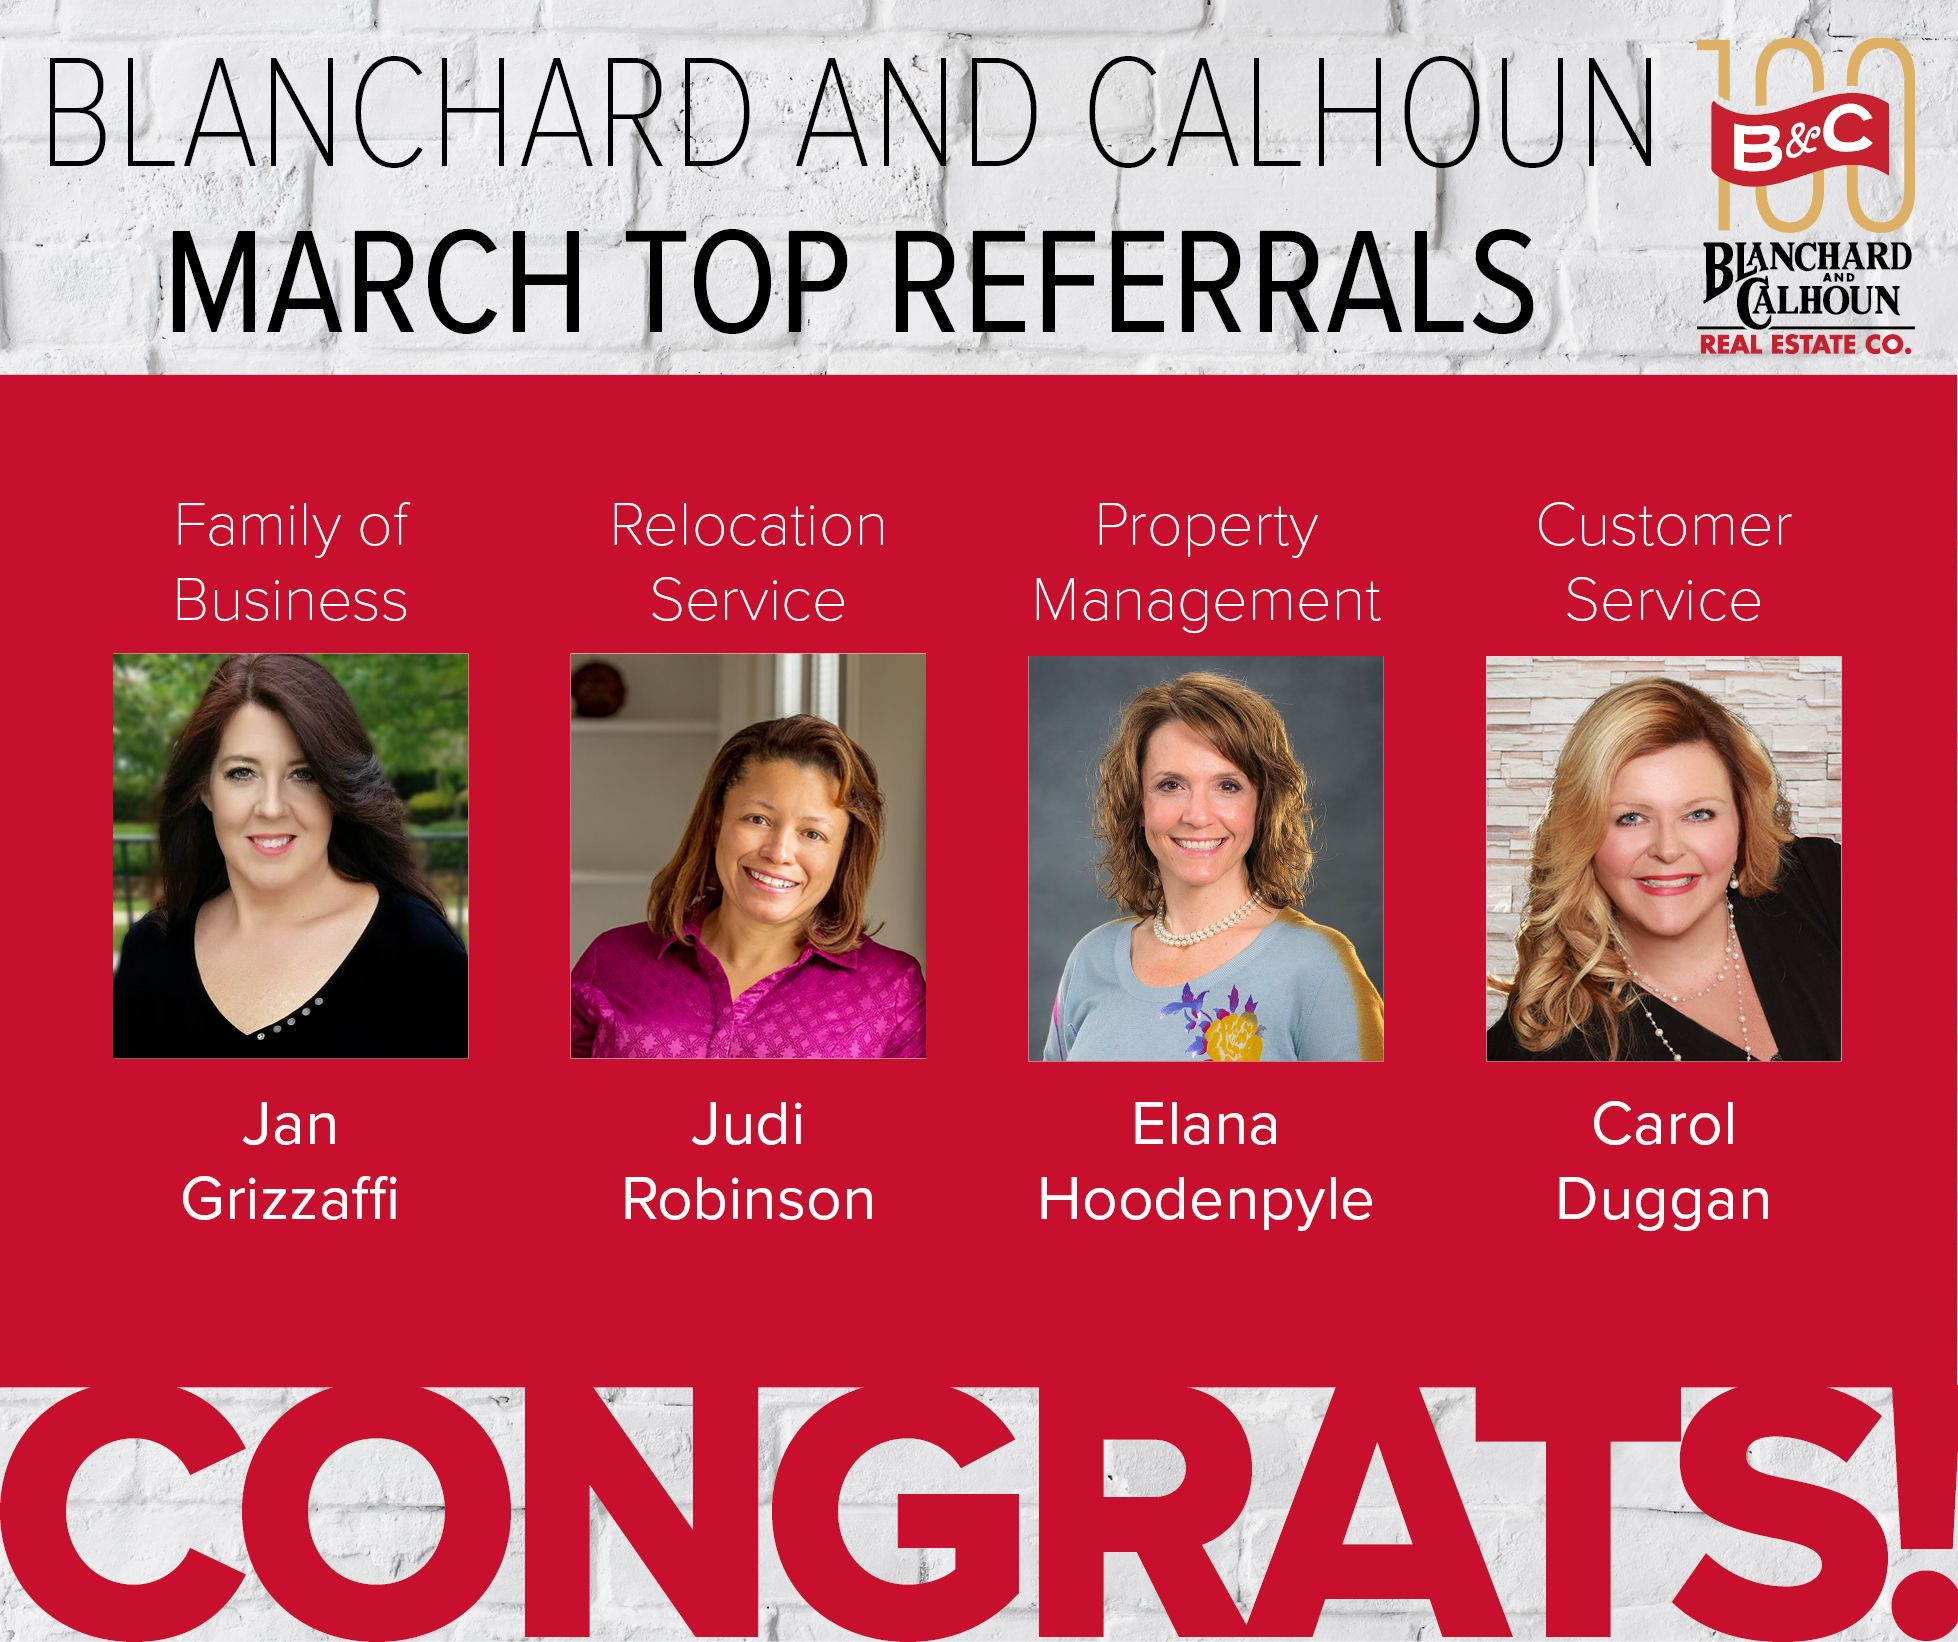 Your referrals mean the world to us thank you!